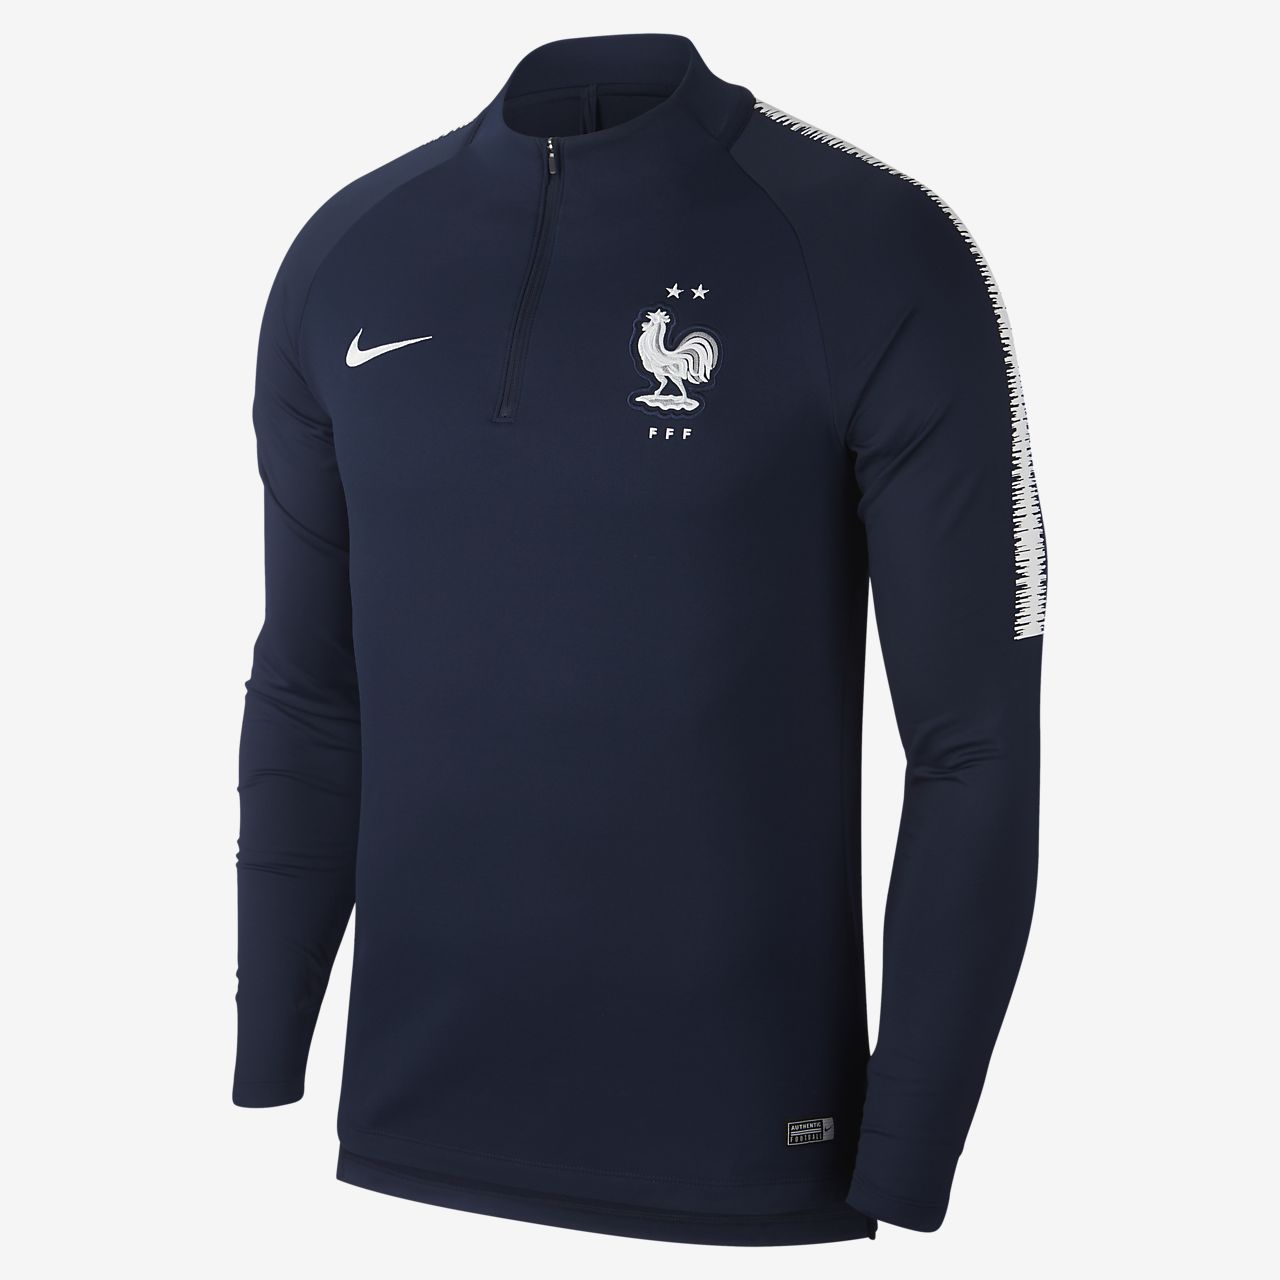 FFF Dri-FIT Squad Drill Men's Long-Sleeve Football Top